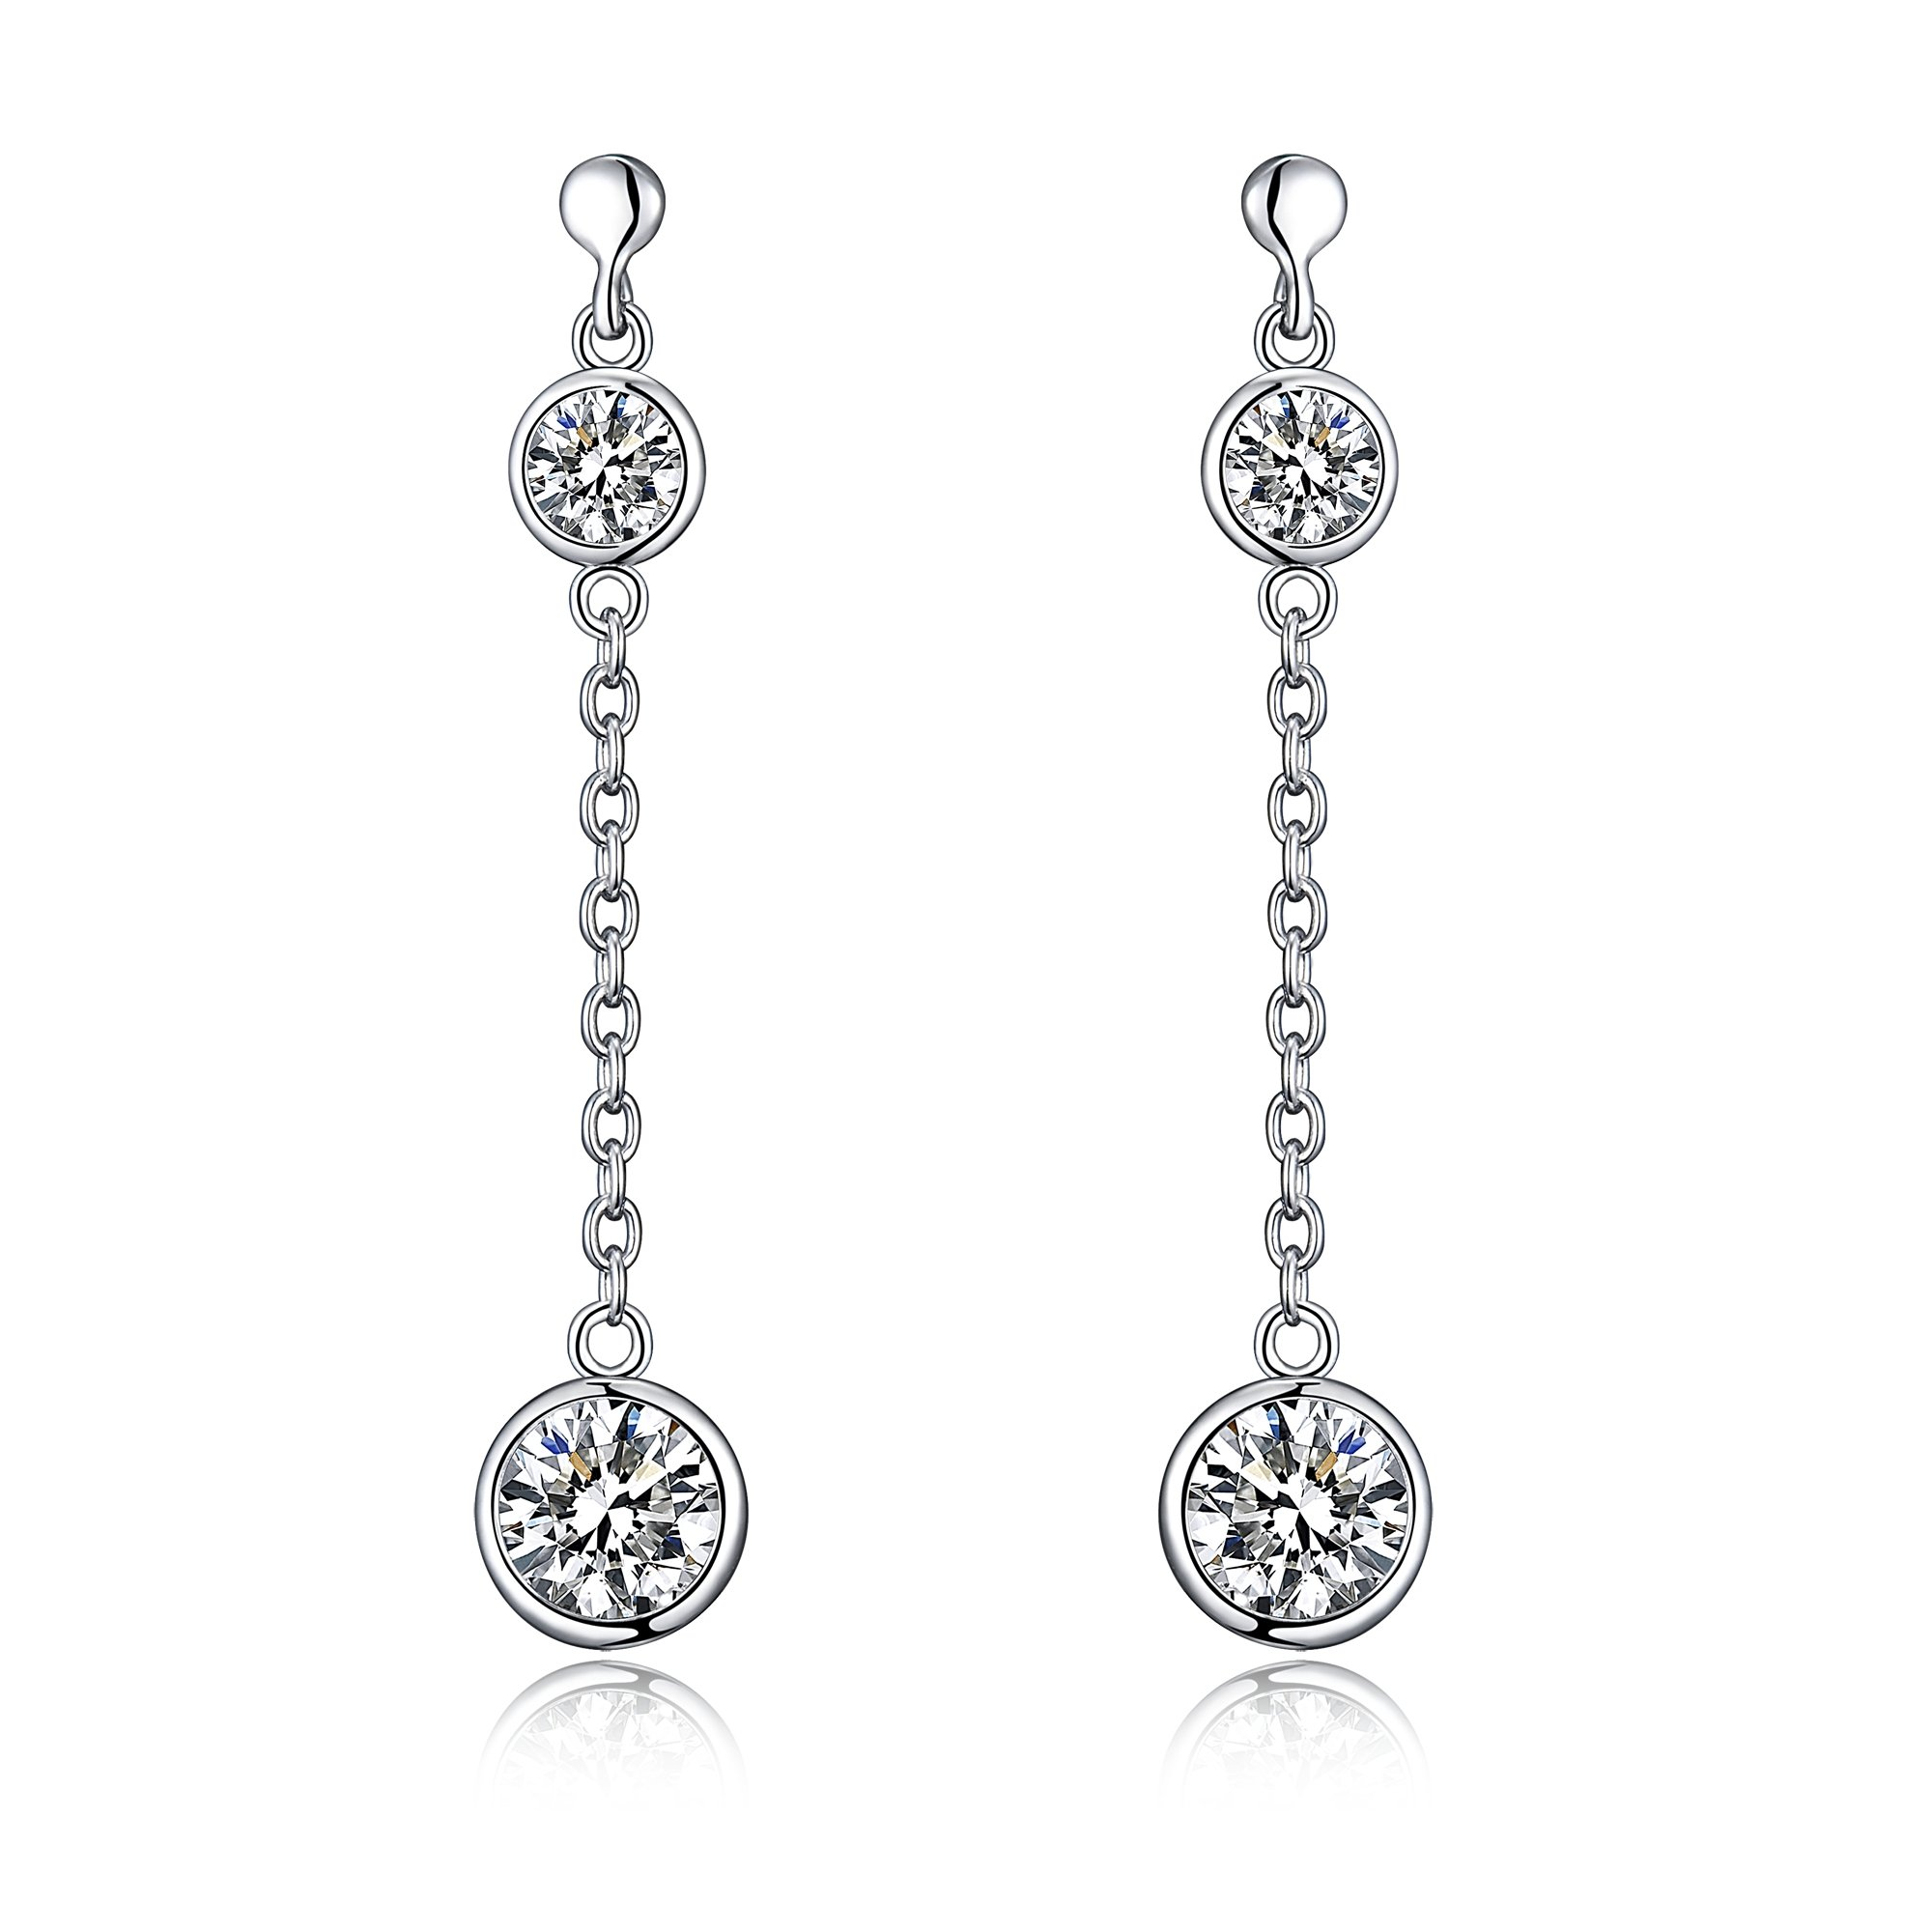 Sterling Silver Dangle Drop Earrings With Simulated Diamonds And Comfort Fit Ear posts - New Arrival